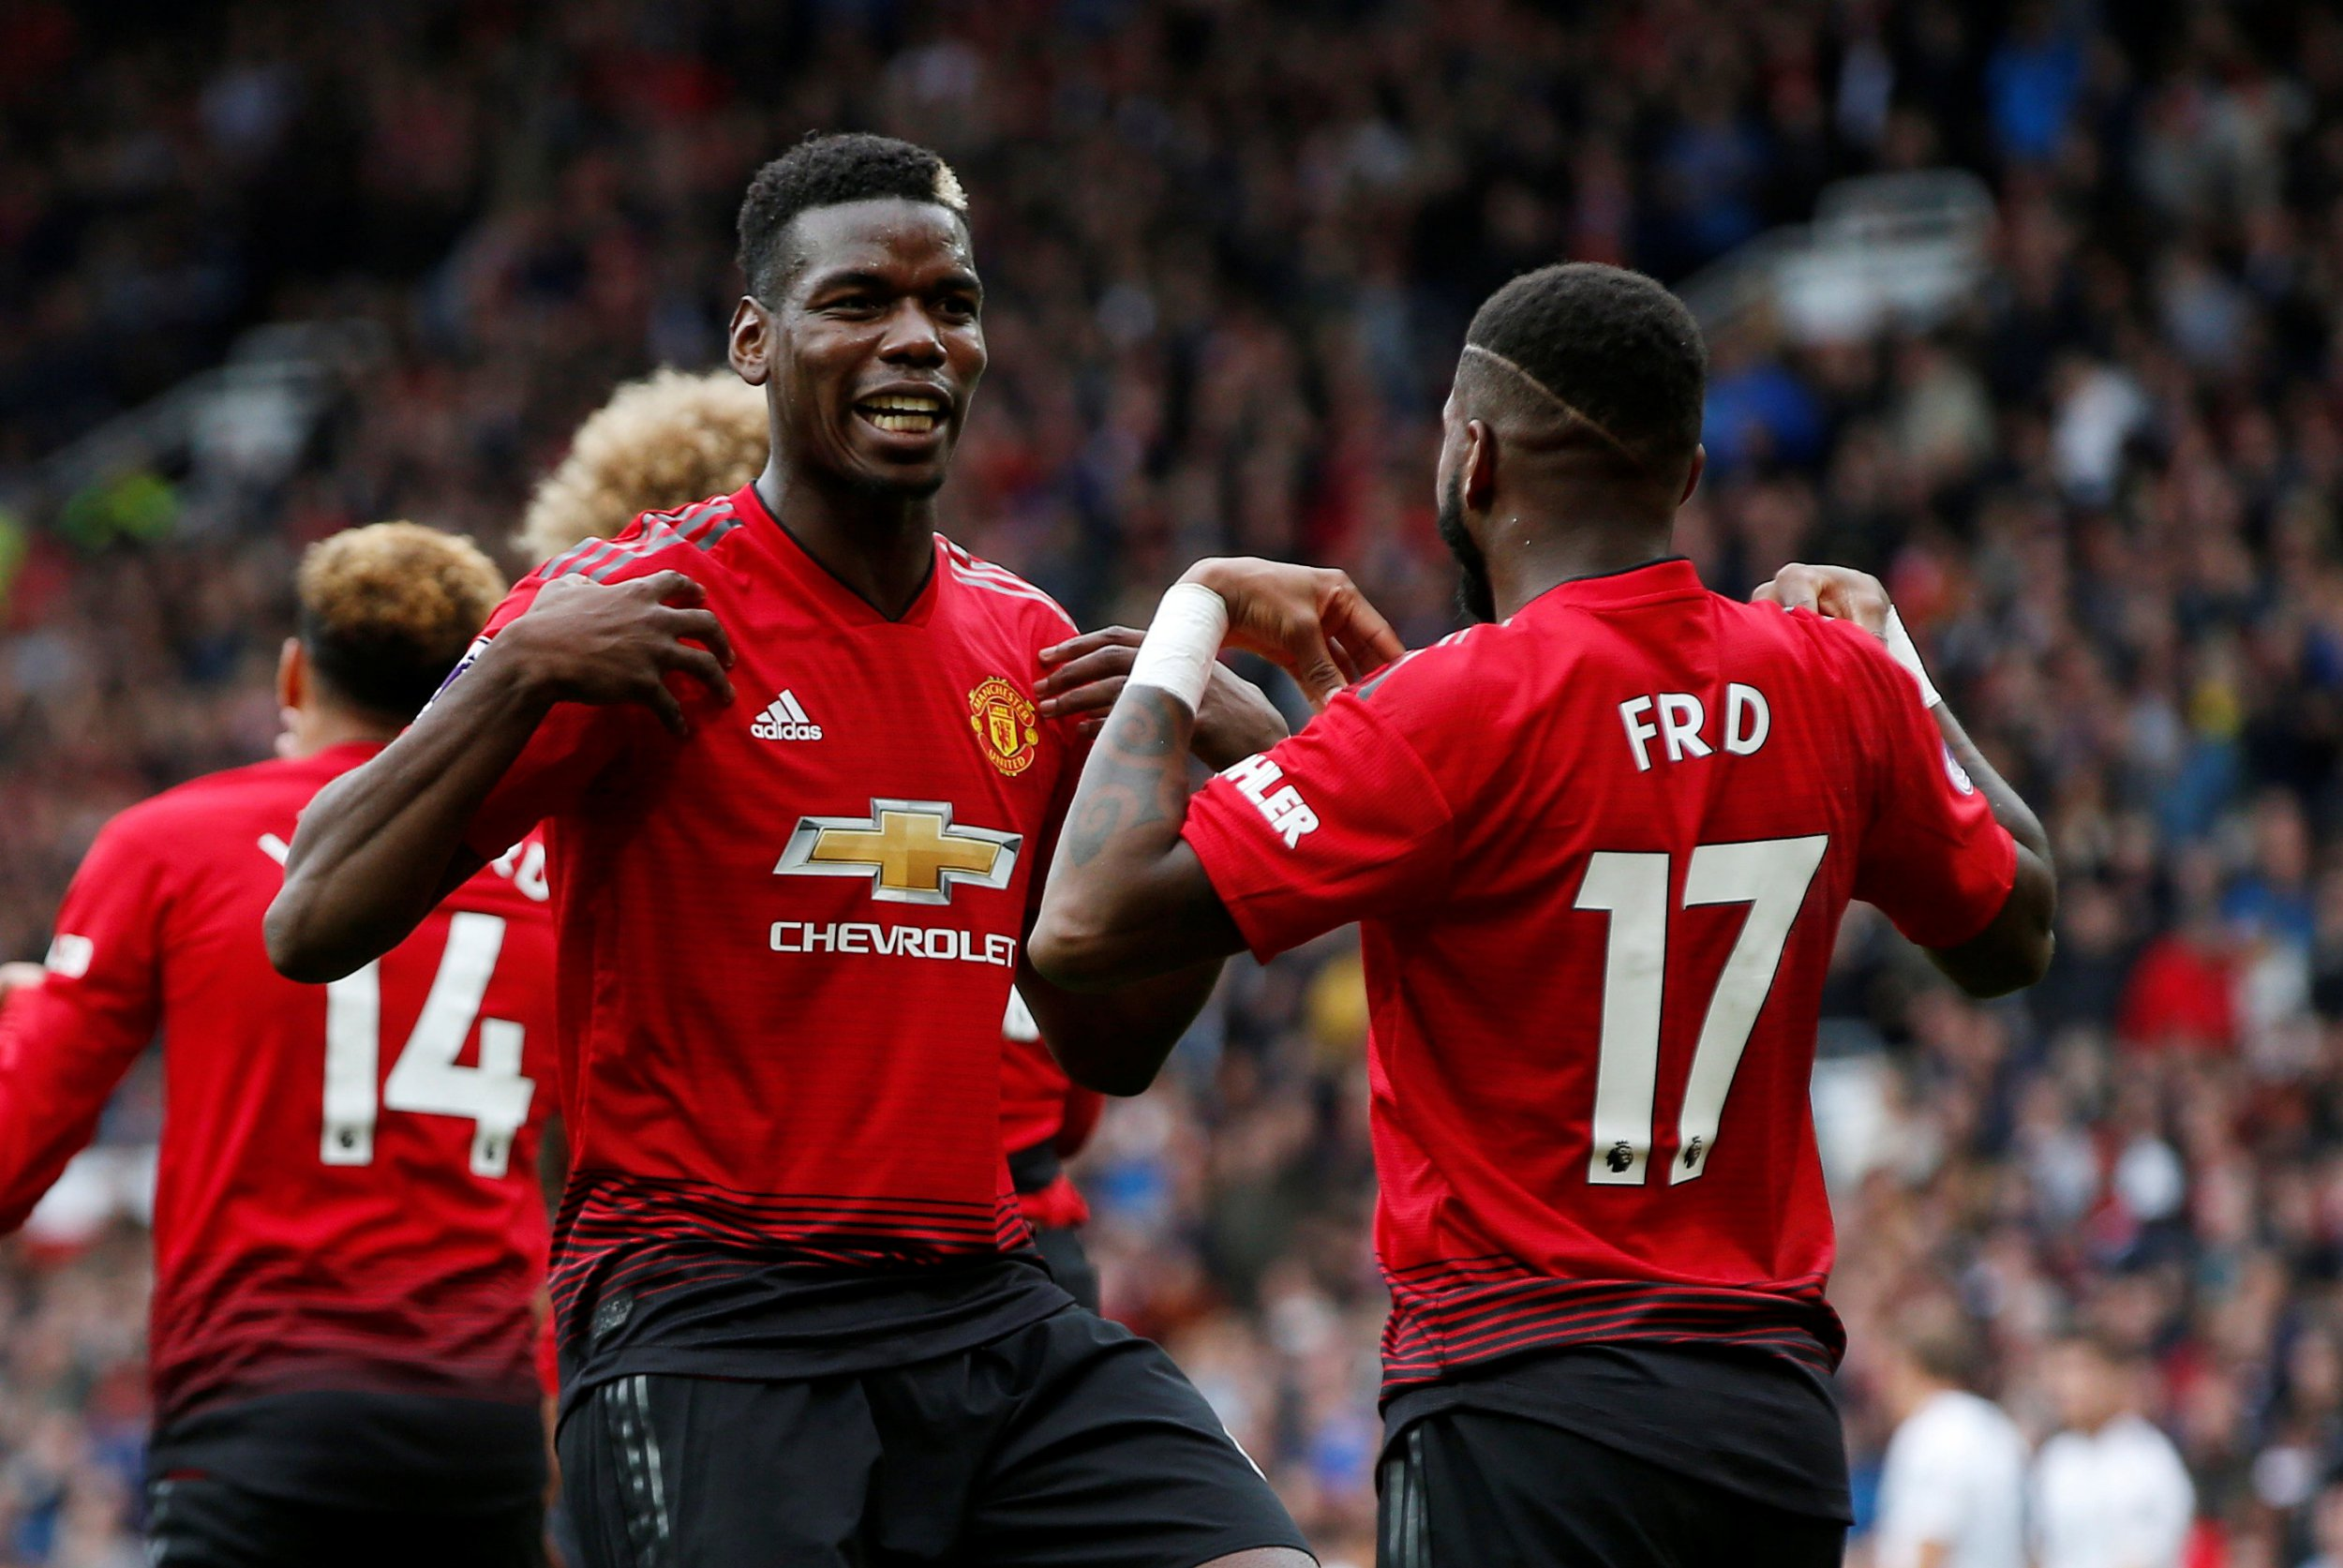 "Soccer Football - Premier League - Manchester United v Wolverhampton Wanderers - Old Trafford, Manchester, Britain - September 22, 2018 Manchester United's Fred celebrates scoring their first goal with Paul Pogba REUTERS/Andrew Yates EDITORIAL USE ONLY. No use with unauthorized audio, video, data, fixture lists, club/league logos or ""live"" services. Online in-match use limited to 75 images, no video emulation. No use in betting, games or single club/league/player publications. Please contact your account representative for further details."